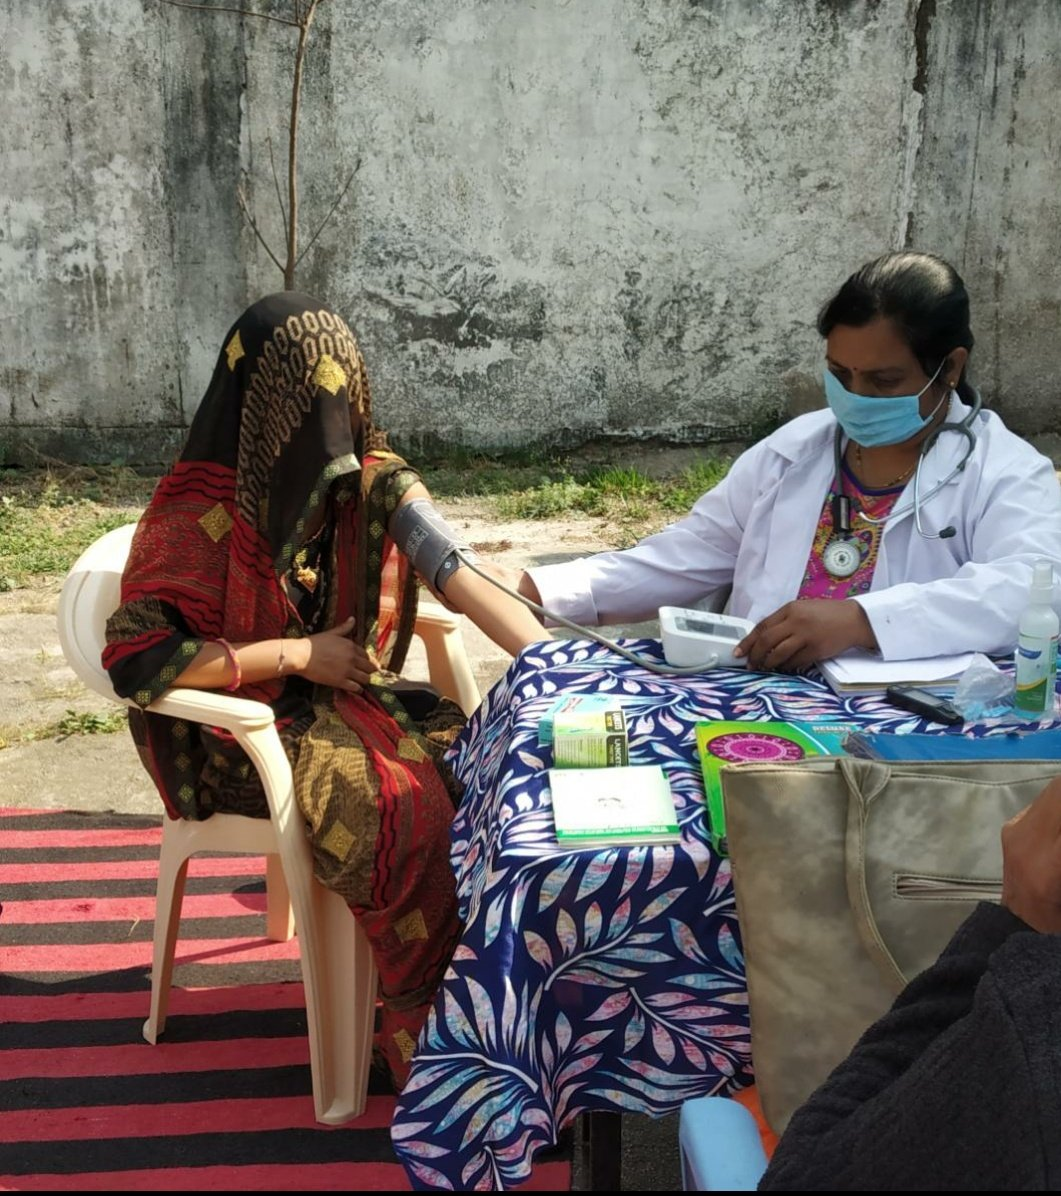 Striving for a healthy community!  NCD screening conducted by the health workers of #AyushmanBharatHWC Merkhedi village, Napakhedi in Madhya Pradesh #HealthForAll @MoHFW_INDIA @usaid_india @ABHWC_MP @SaloniSidana1 @healthminmp